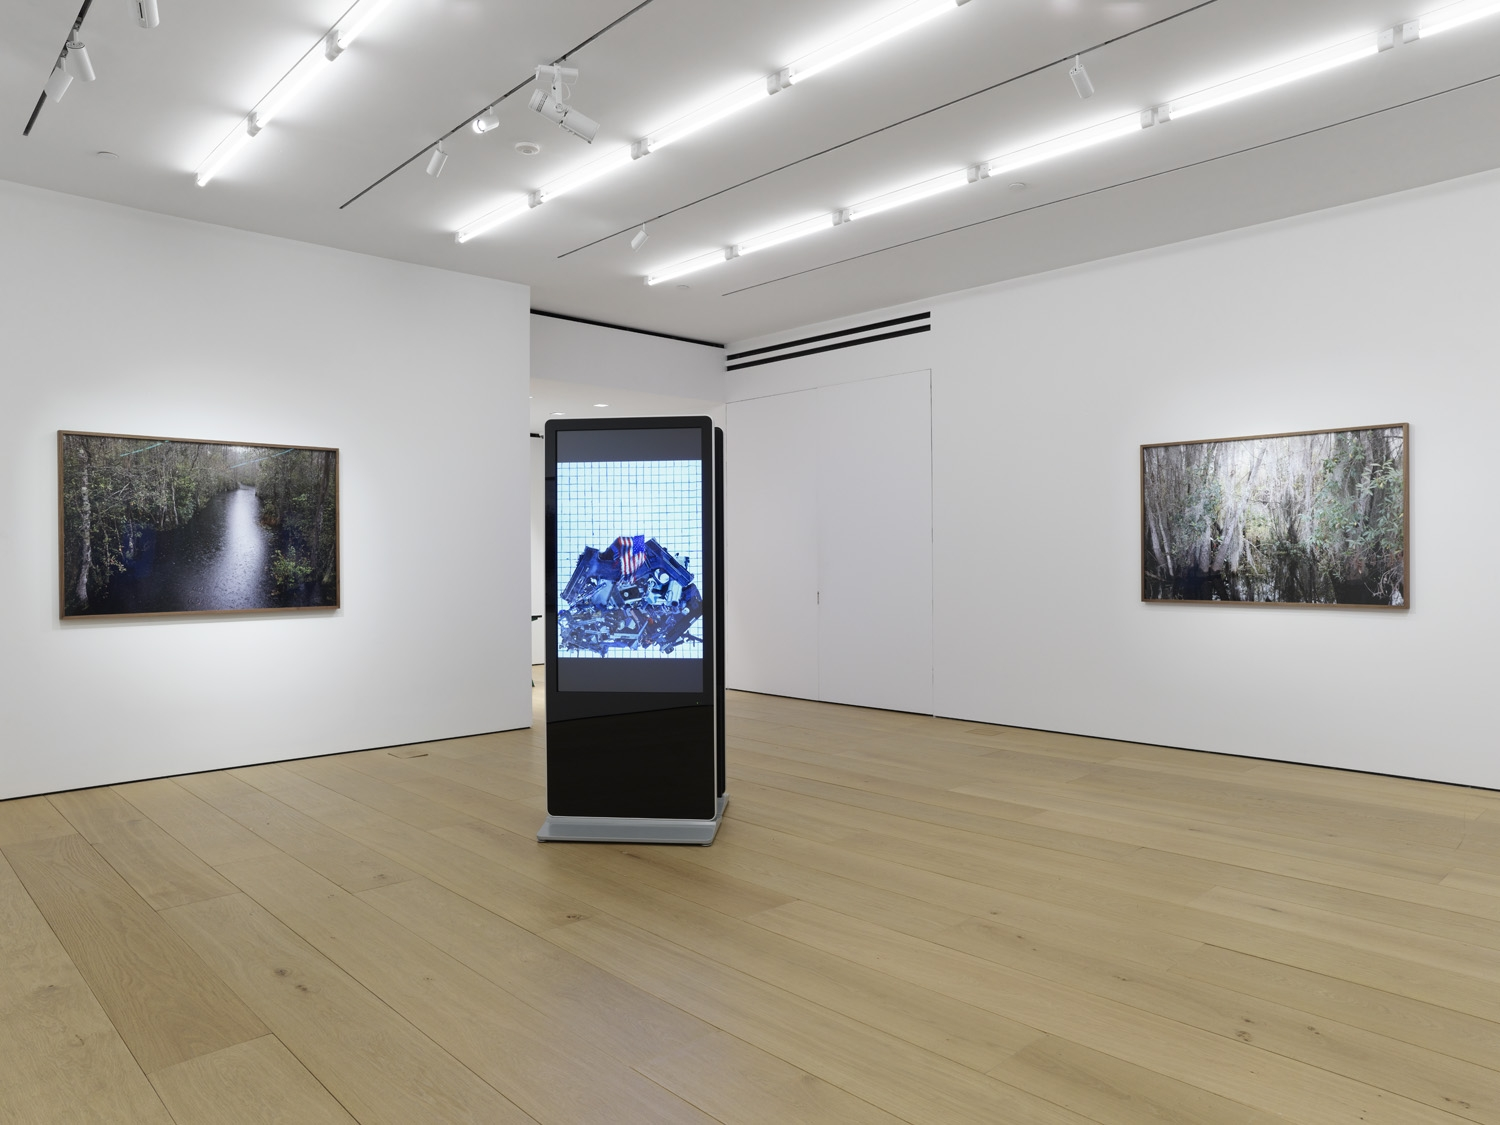 Third installation view of the exhibition Catherine Opie: Rhetorical Landscapes at Lehmann Maupin New York